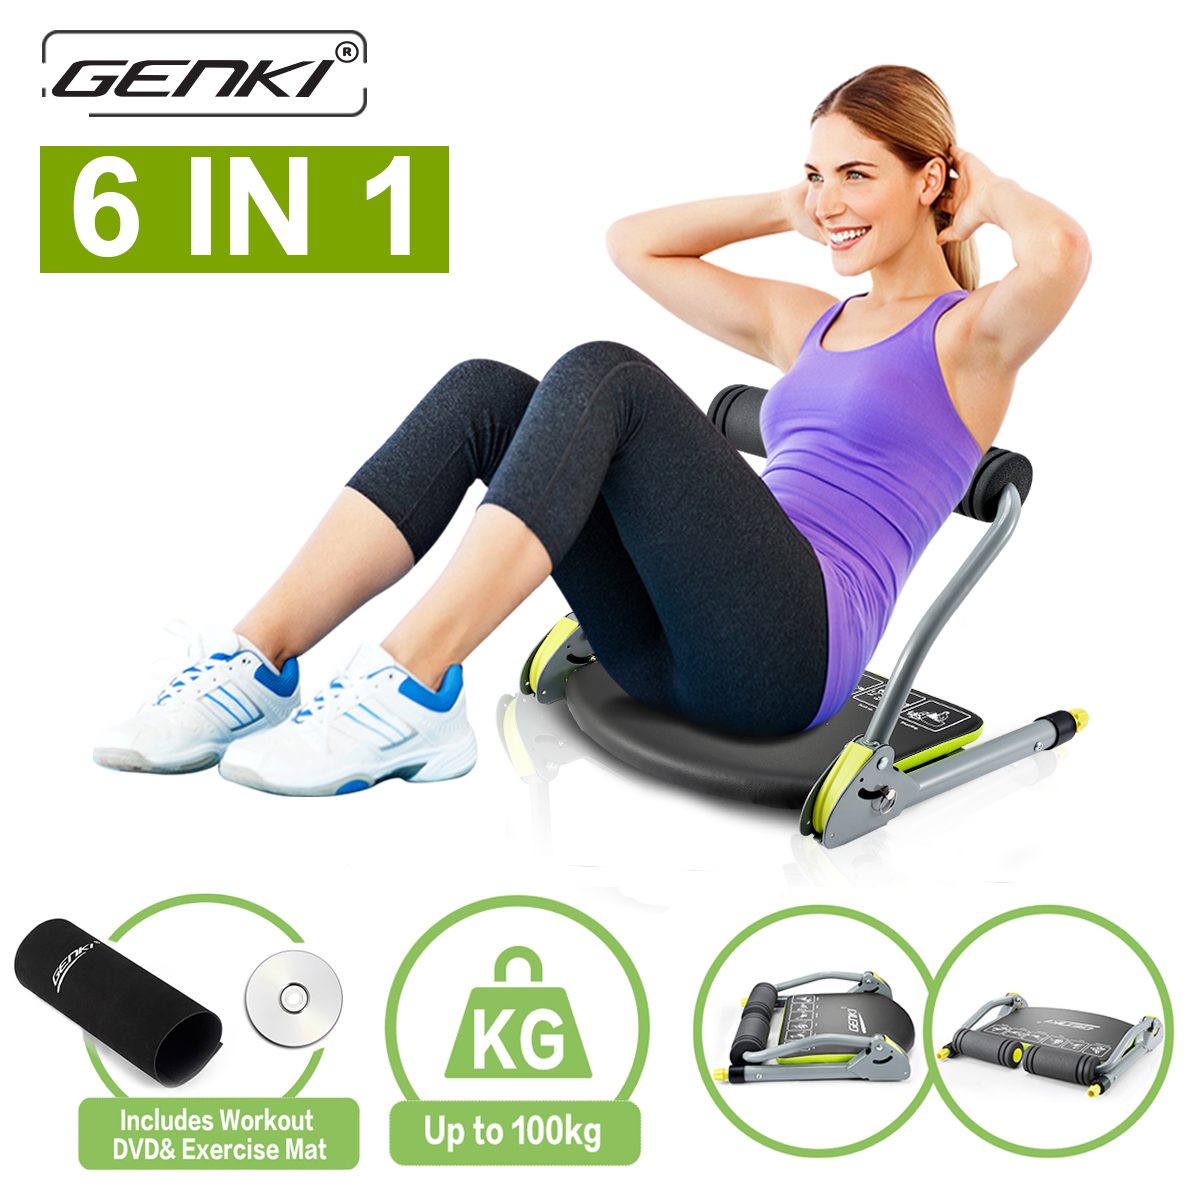 Genki Abs Machine Total Core Exercise Abdominal Trainer Ab Workout Fitness Equipment Sit Ups Crunches 6 In 1 (Exercise... by Genki